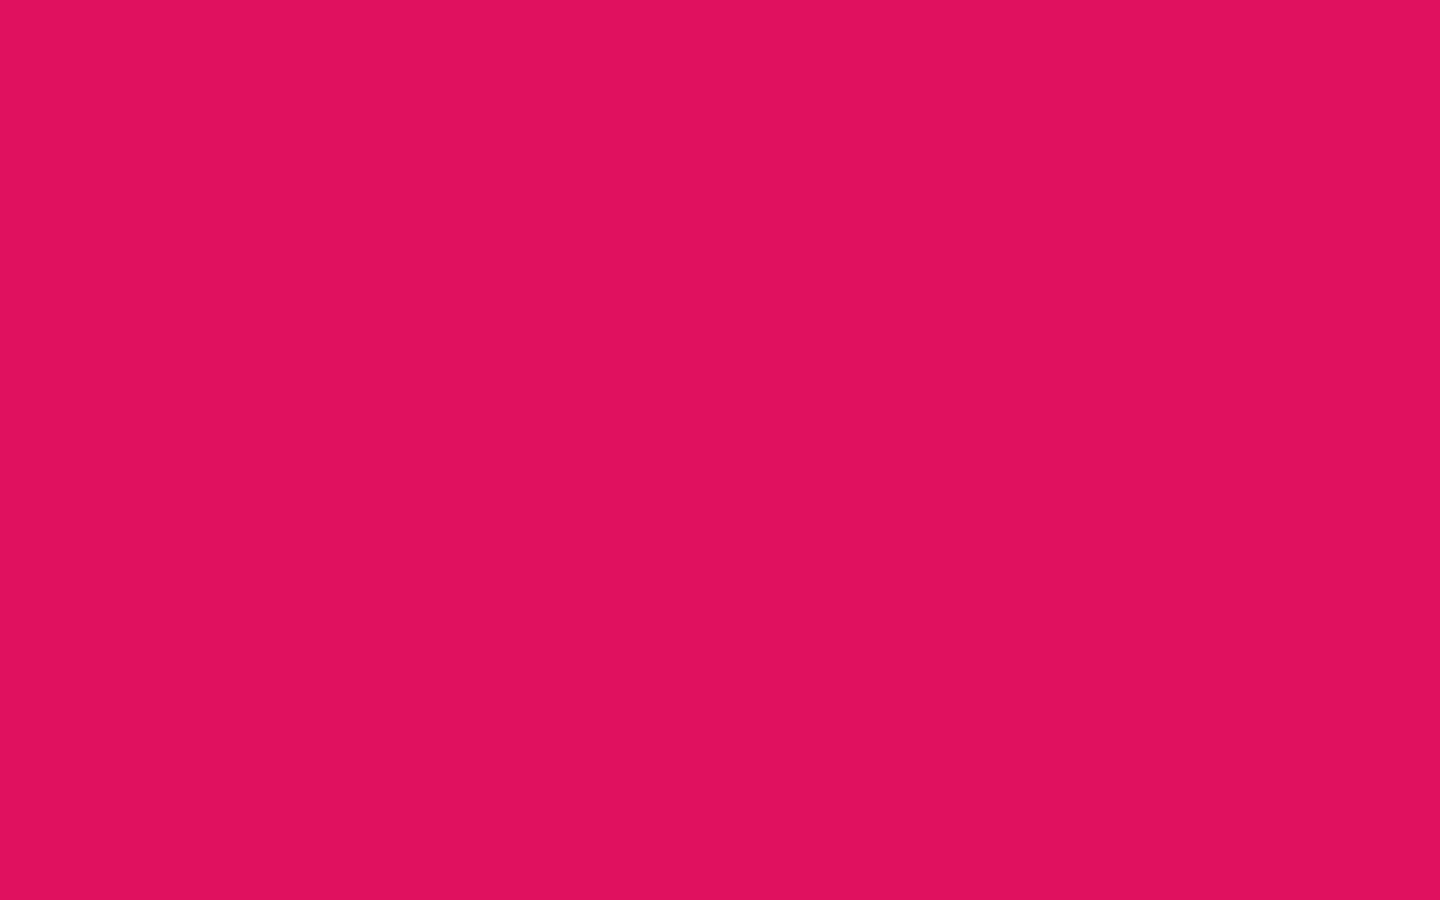 1440x900 Ruby Solid Color Background